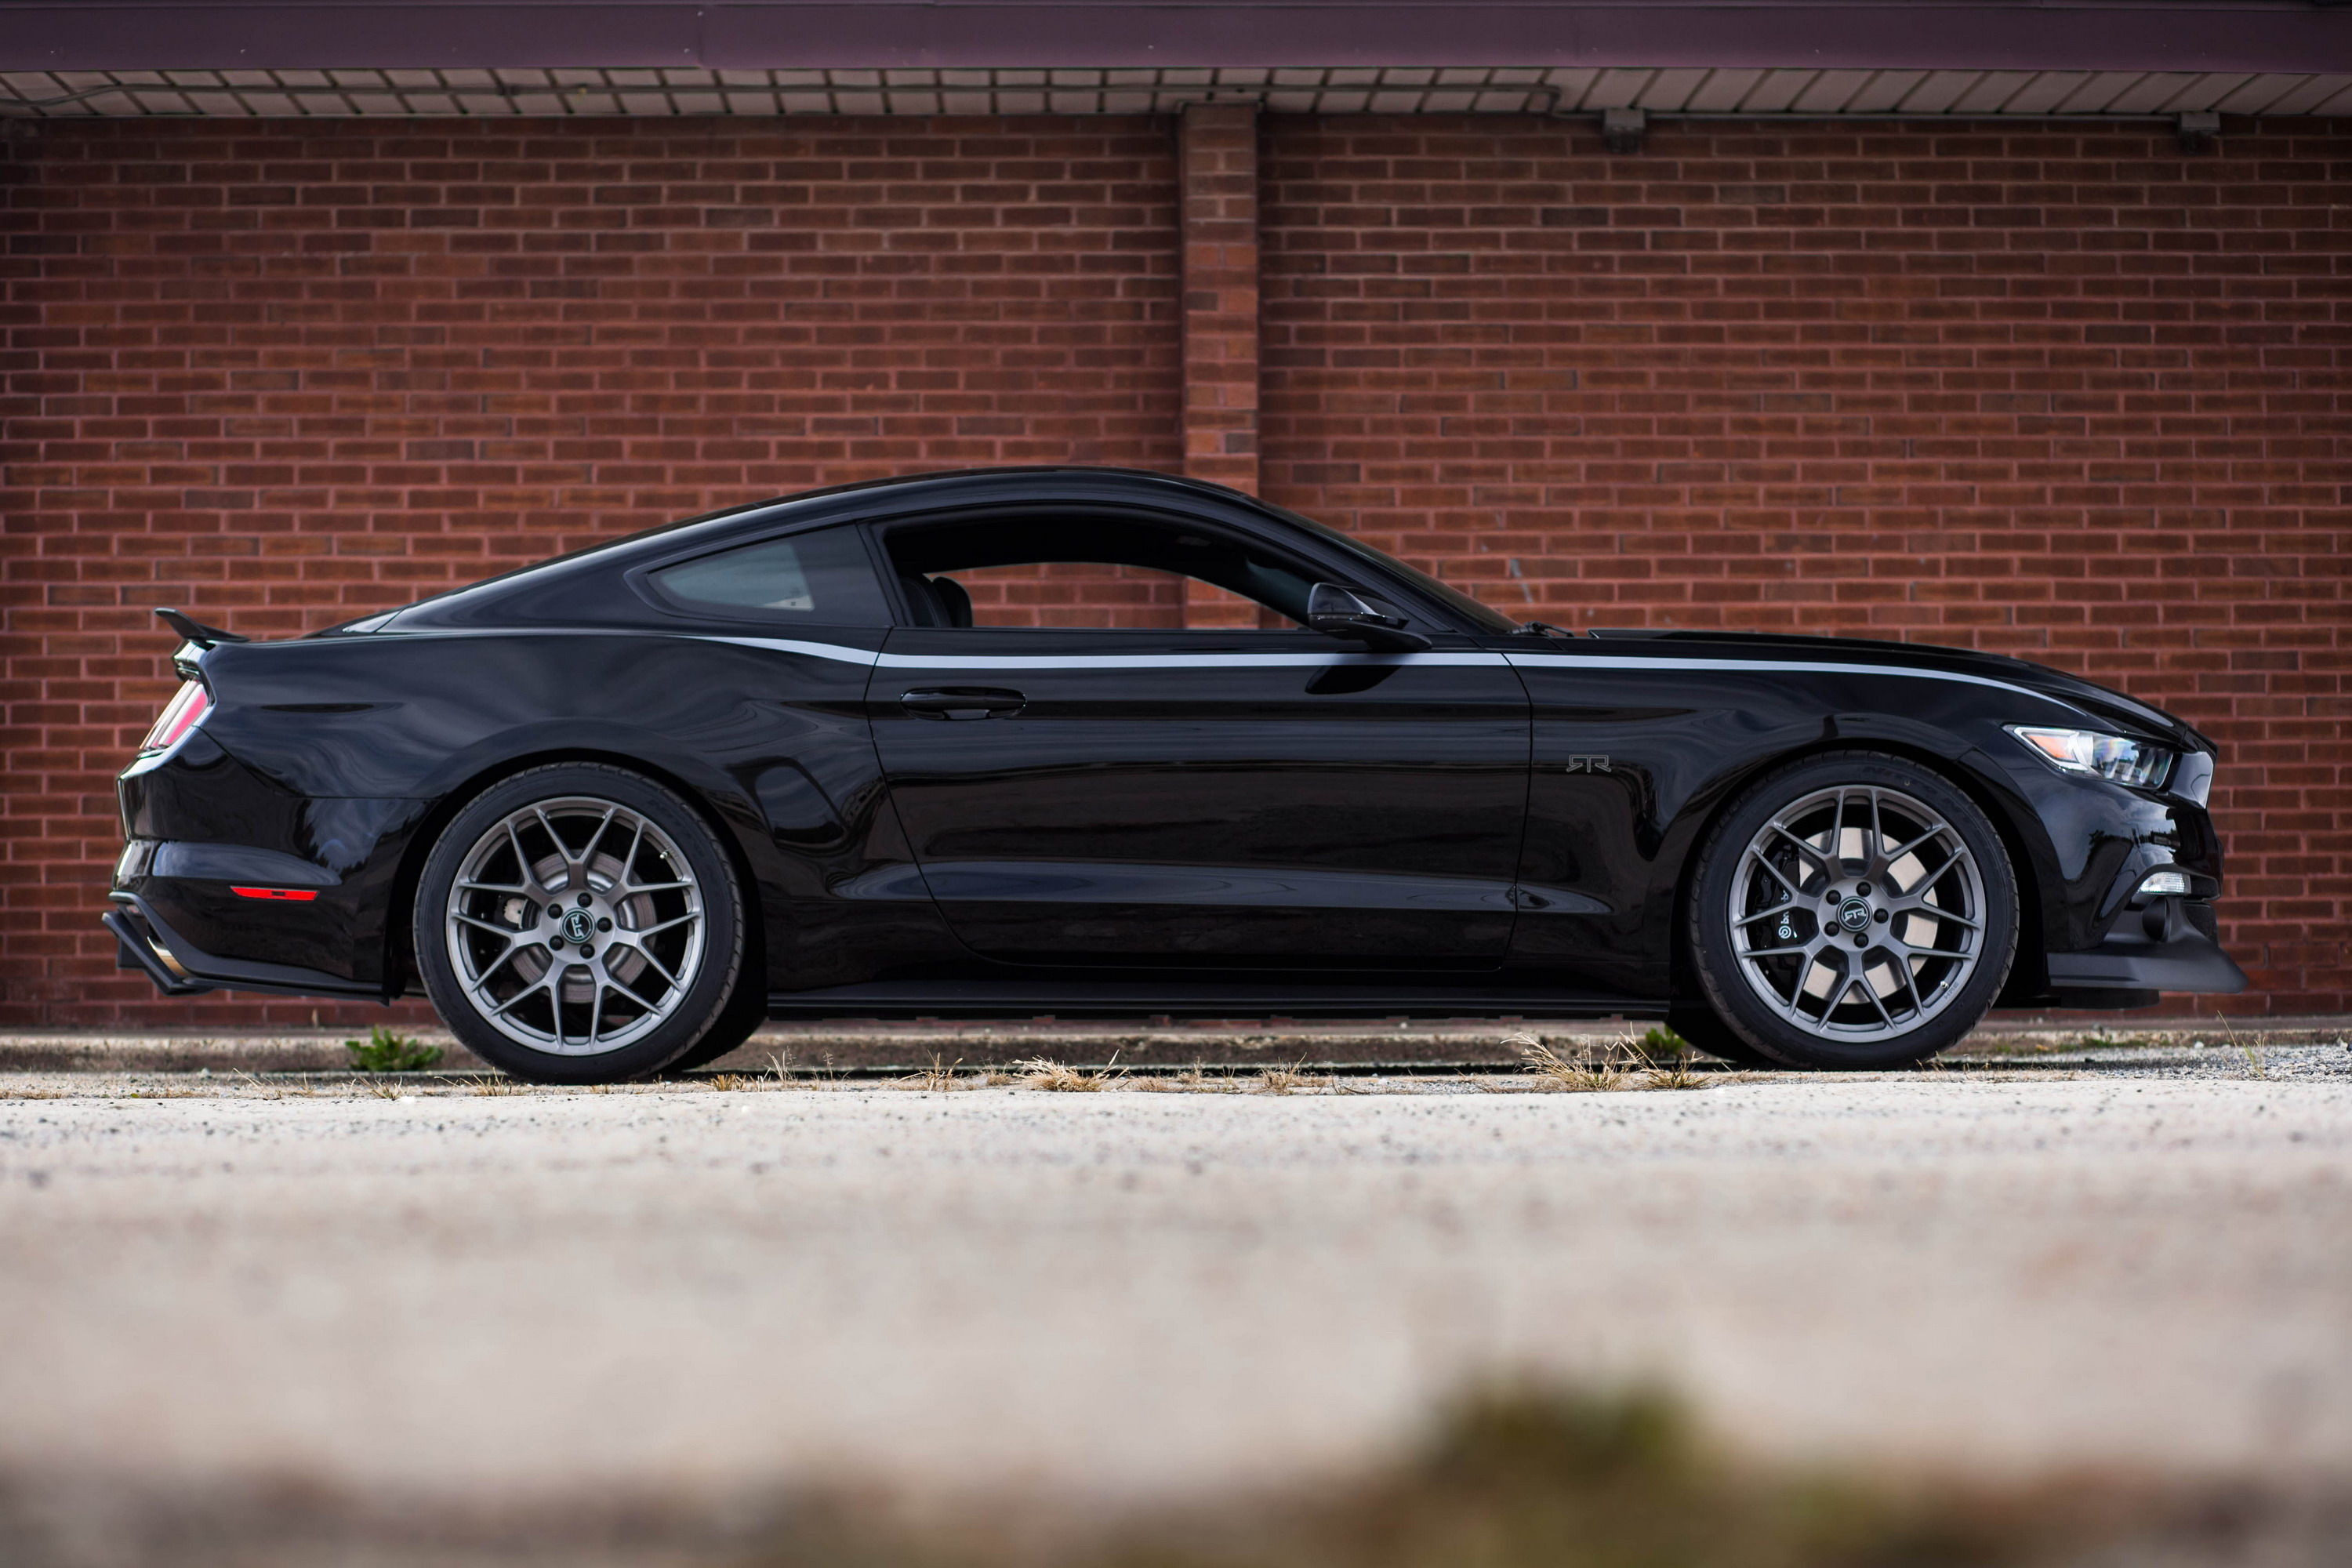 2015 Mustang Rtr >> 2015 Ford Mustang Rtr Top Speed